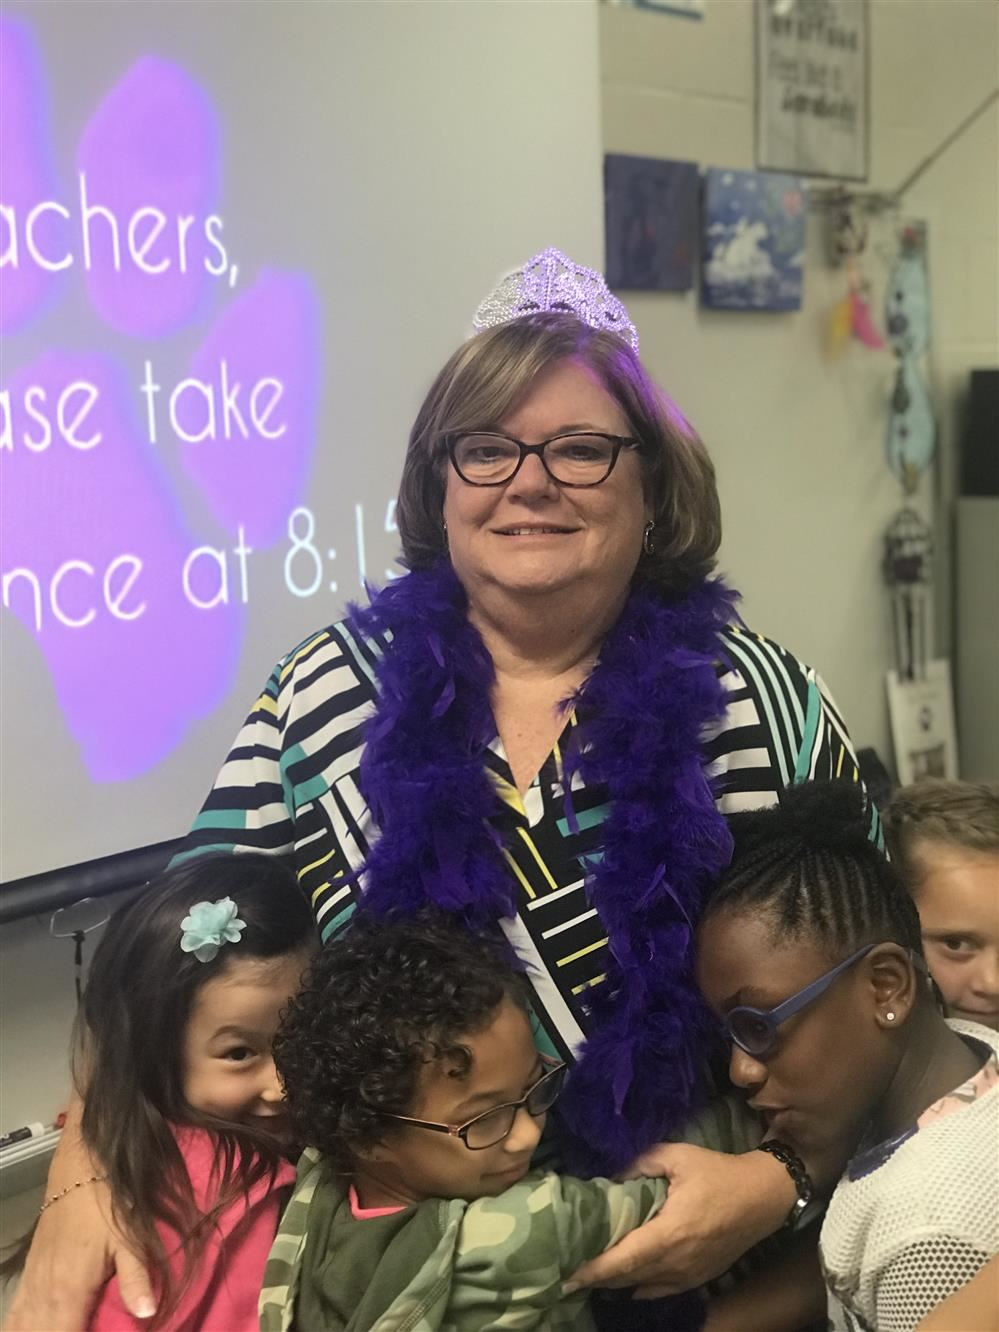 Ms. Cheryl Fletcher with her students. 2018 Teacher of the Year